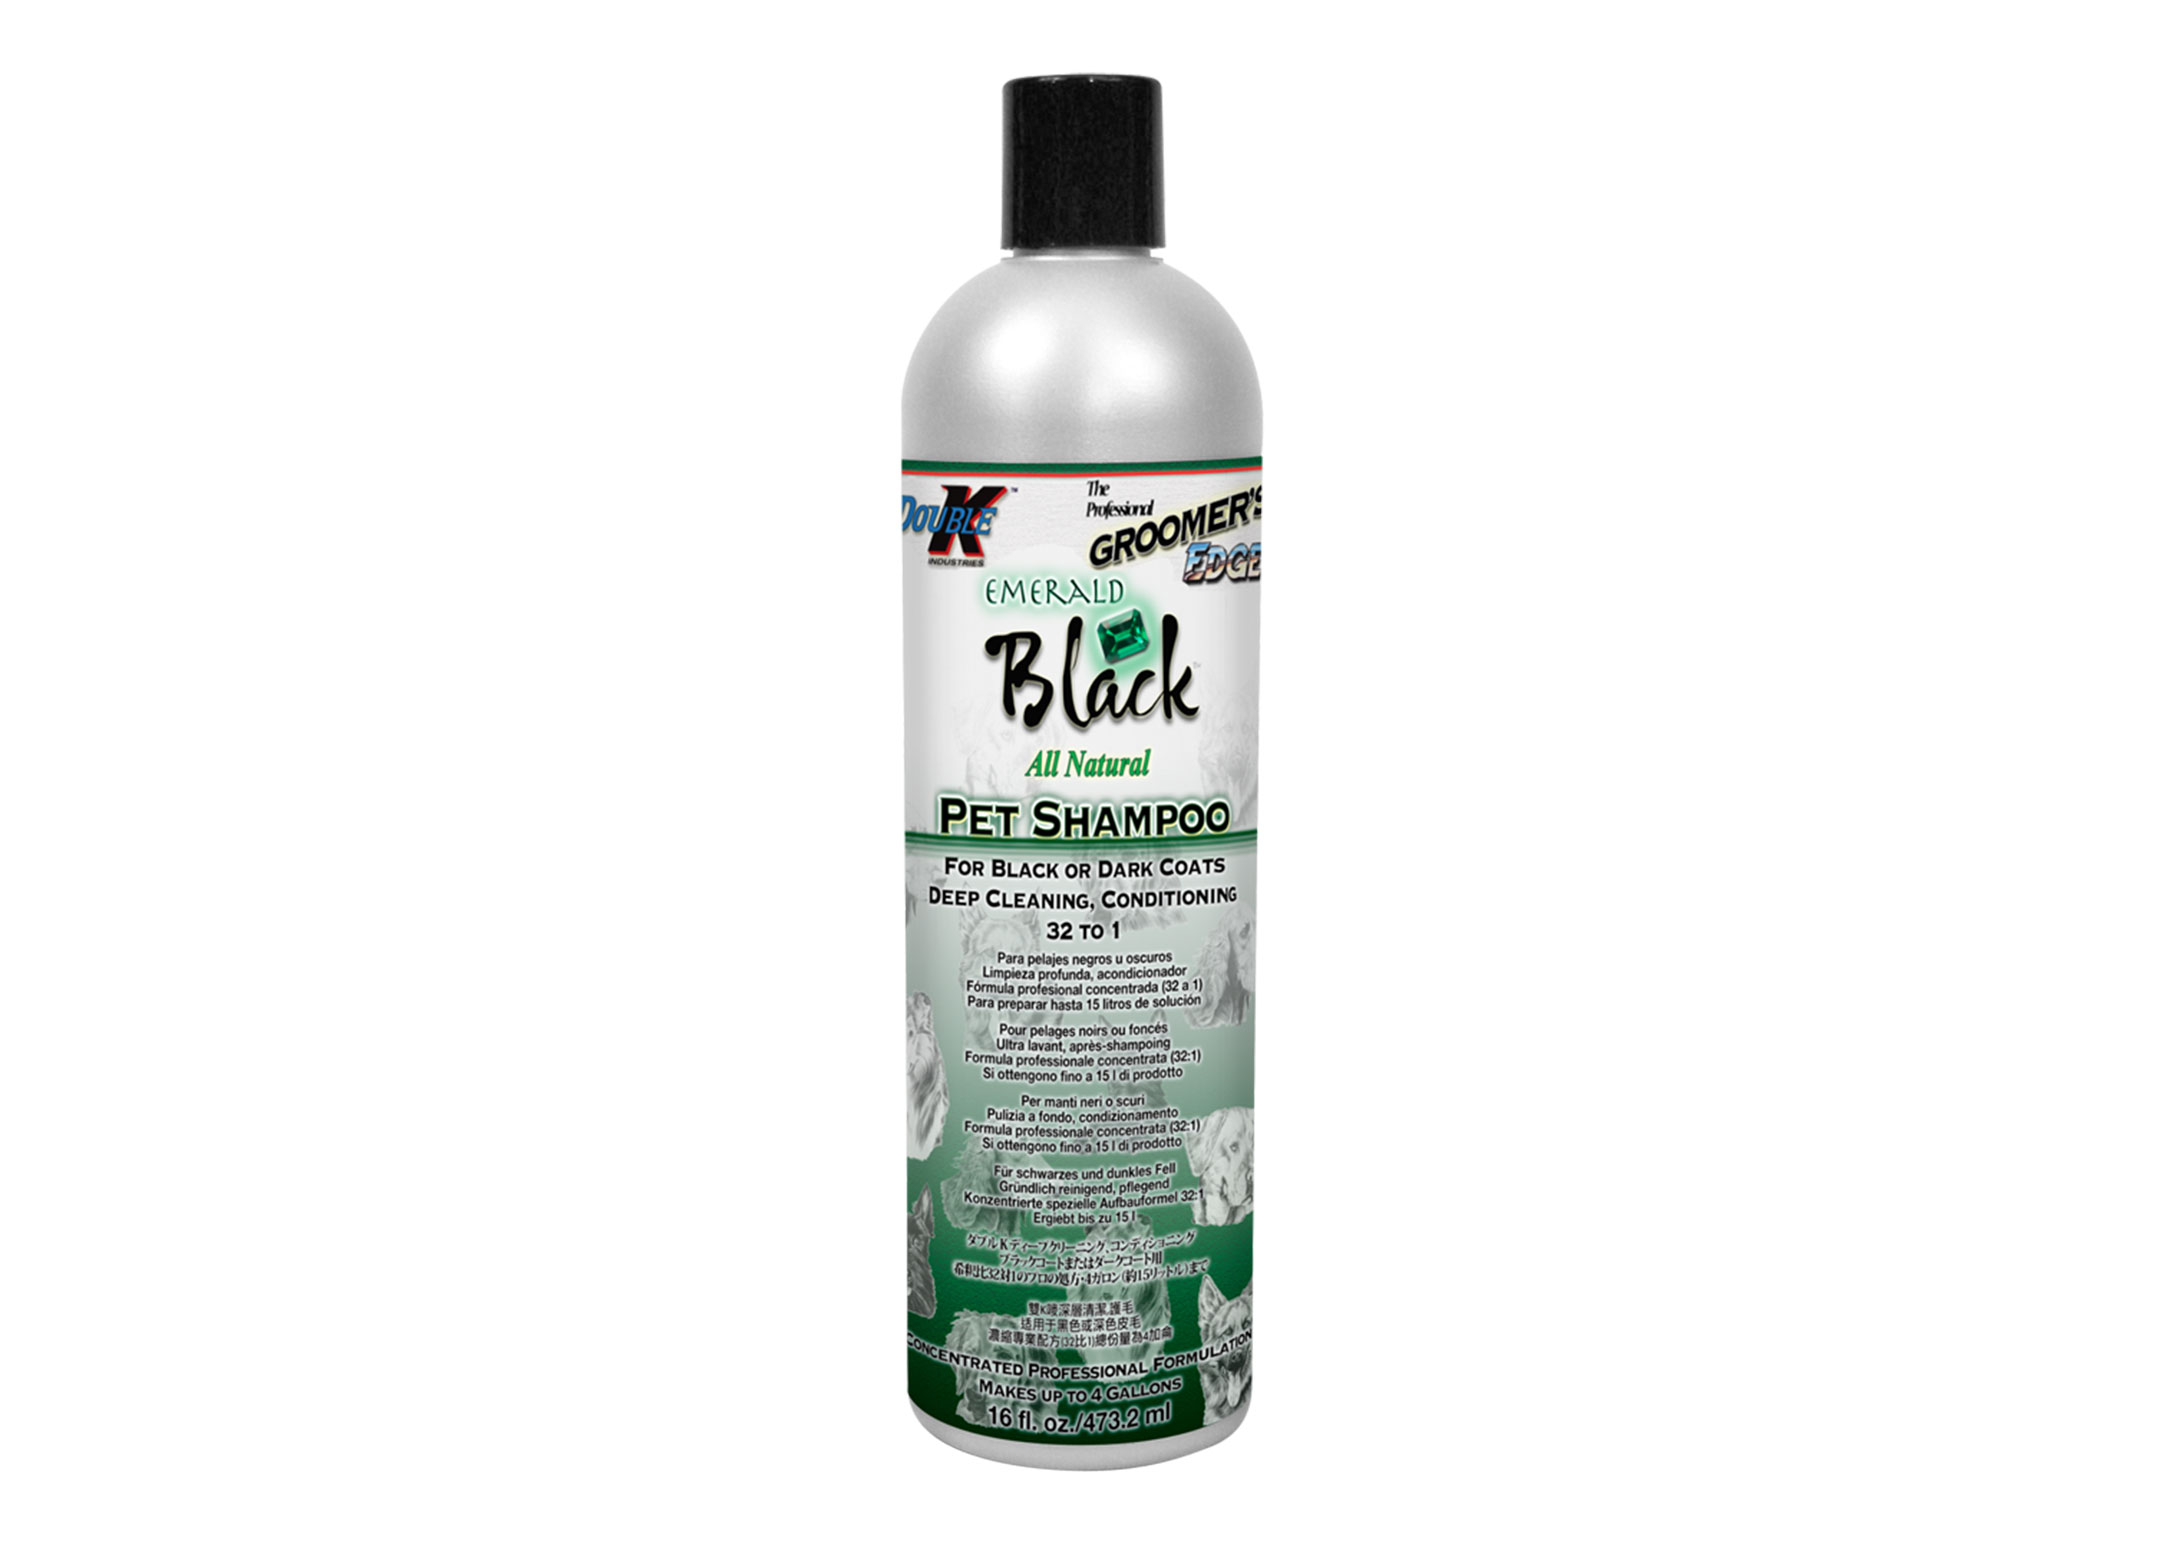 Double K Emerald Black Shampoo For Dogs, Cats And Horses